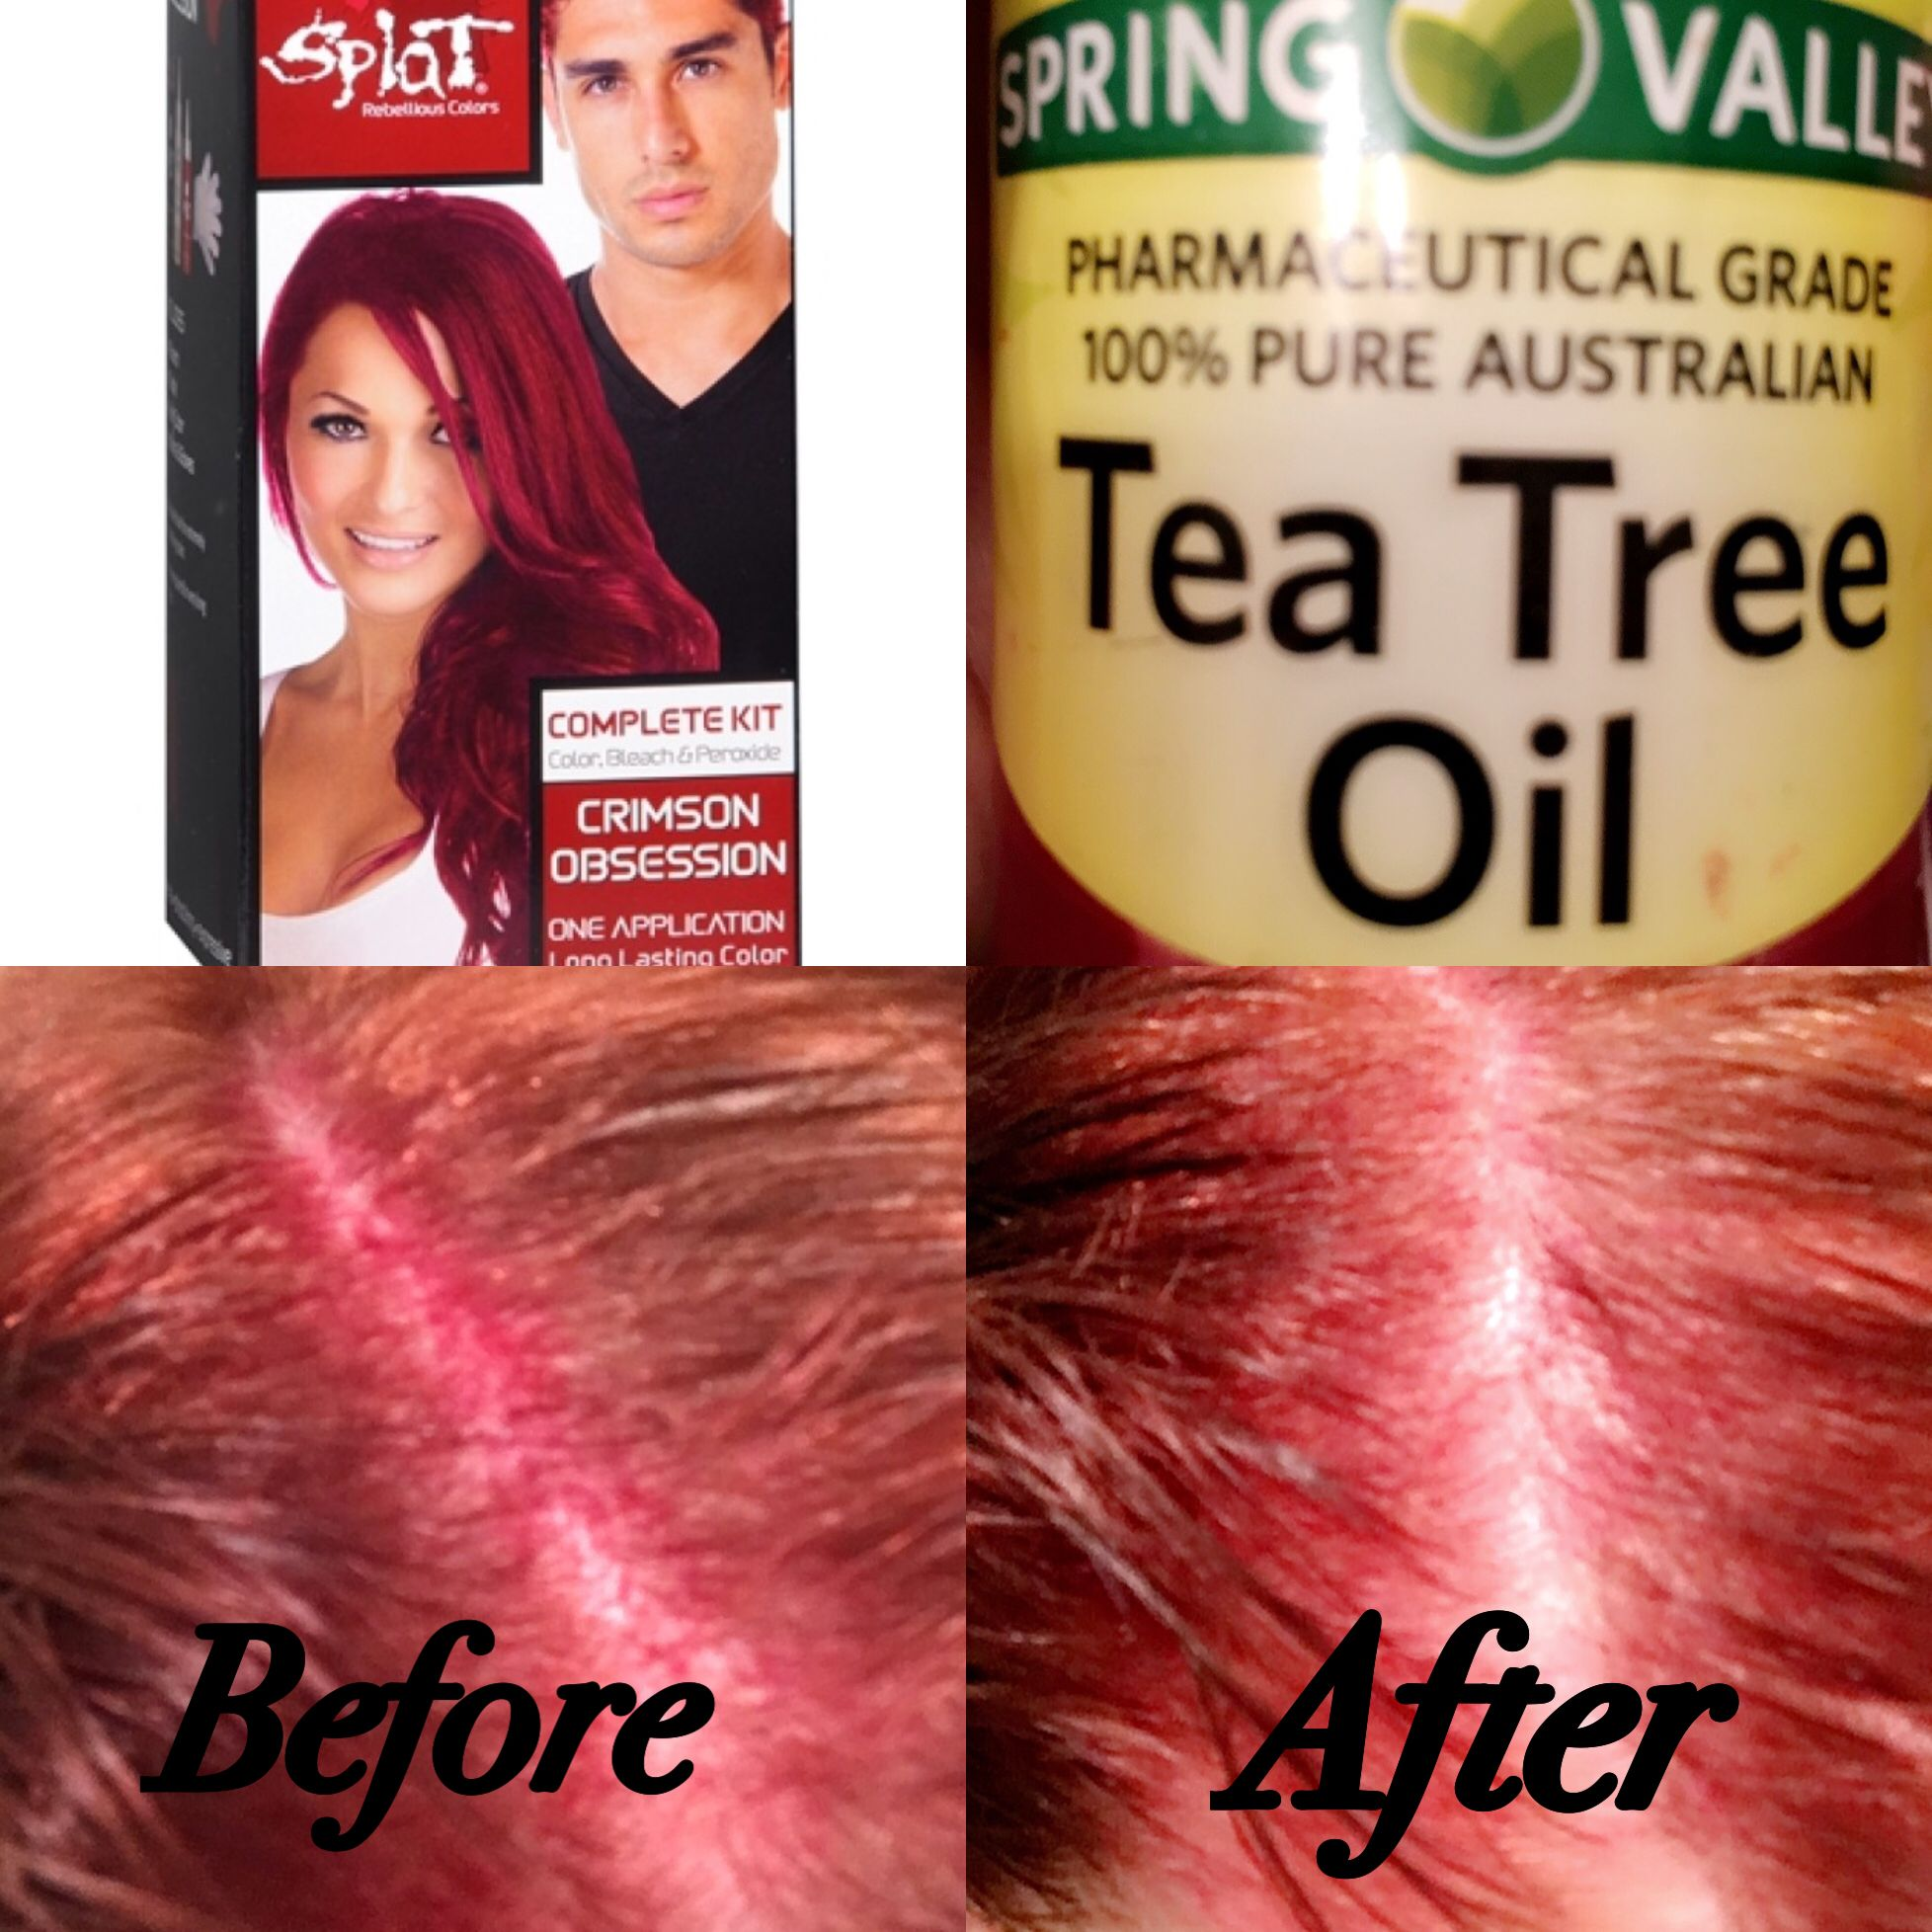 Get Rid Of Splat Hair Dye Stains On Your Scalp With Tea Tree Oil